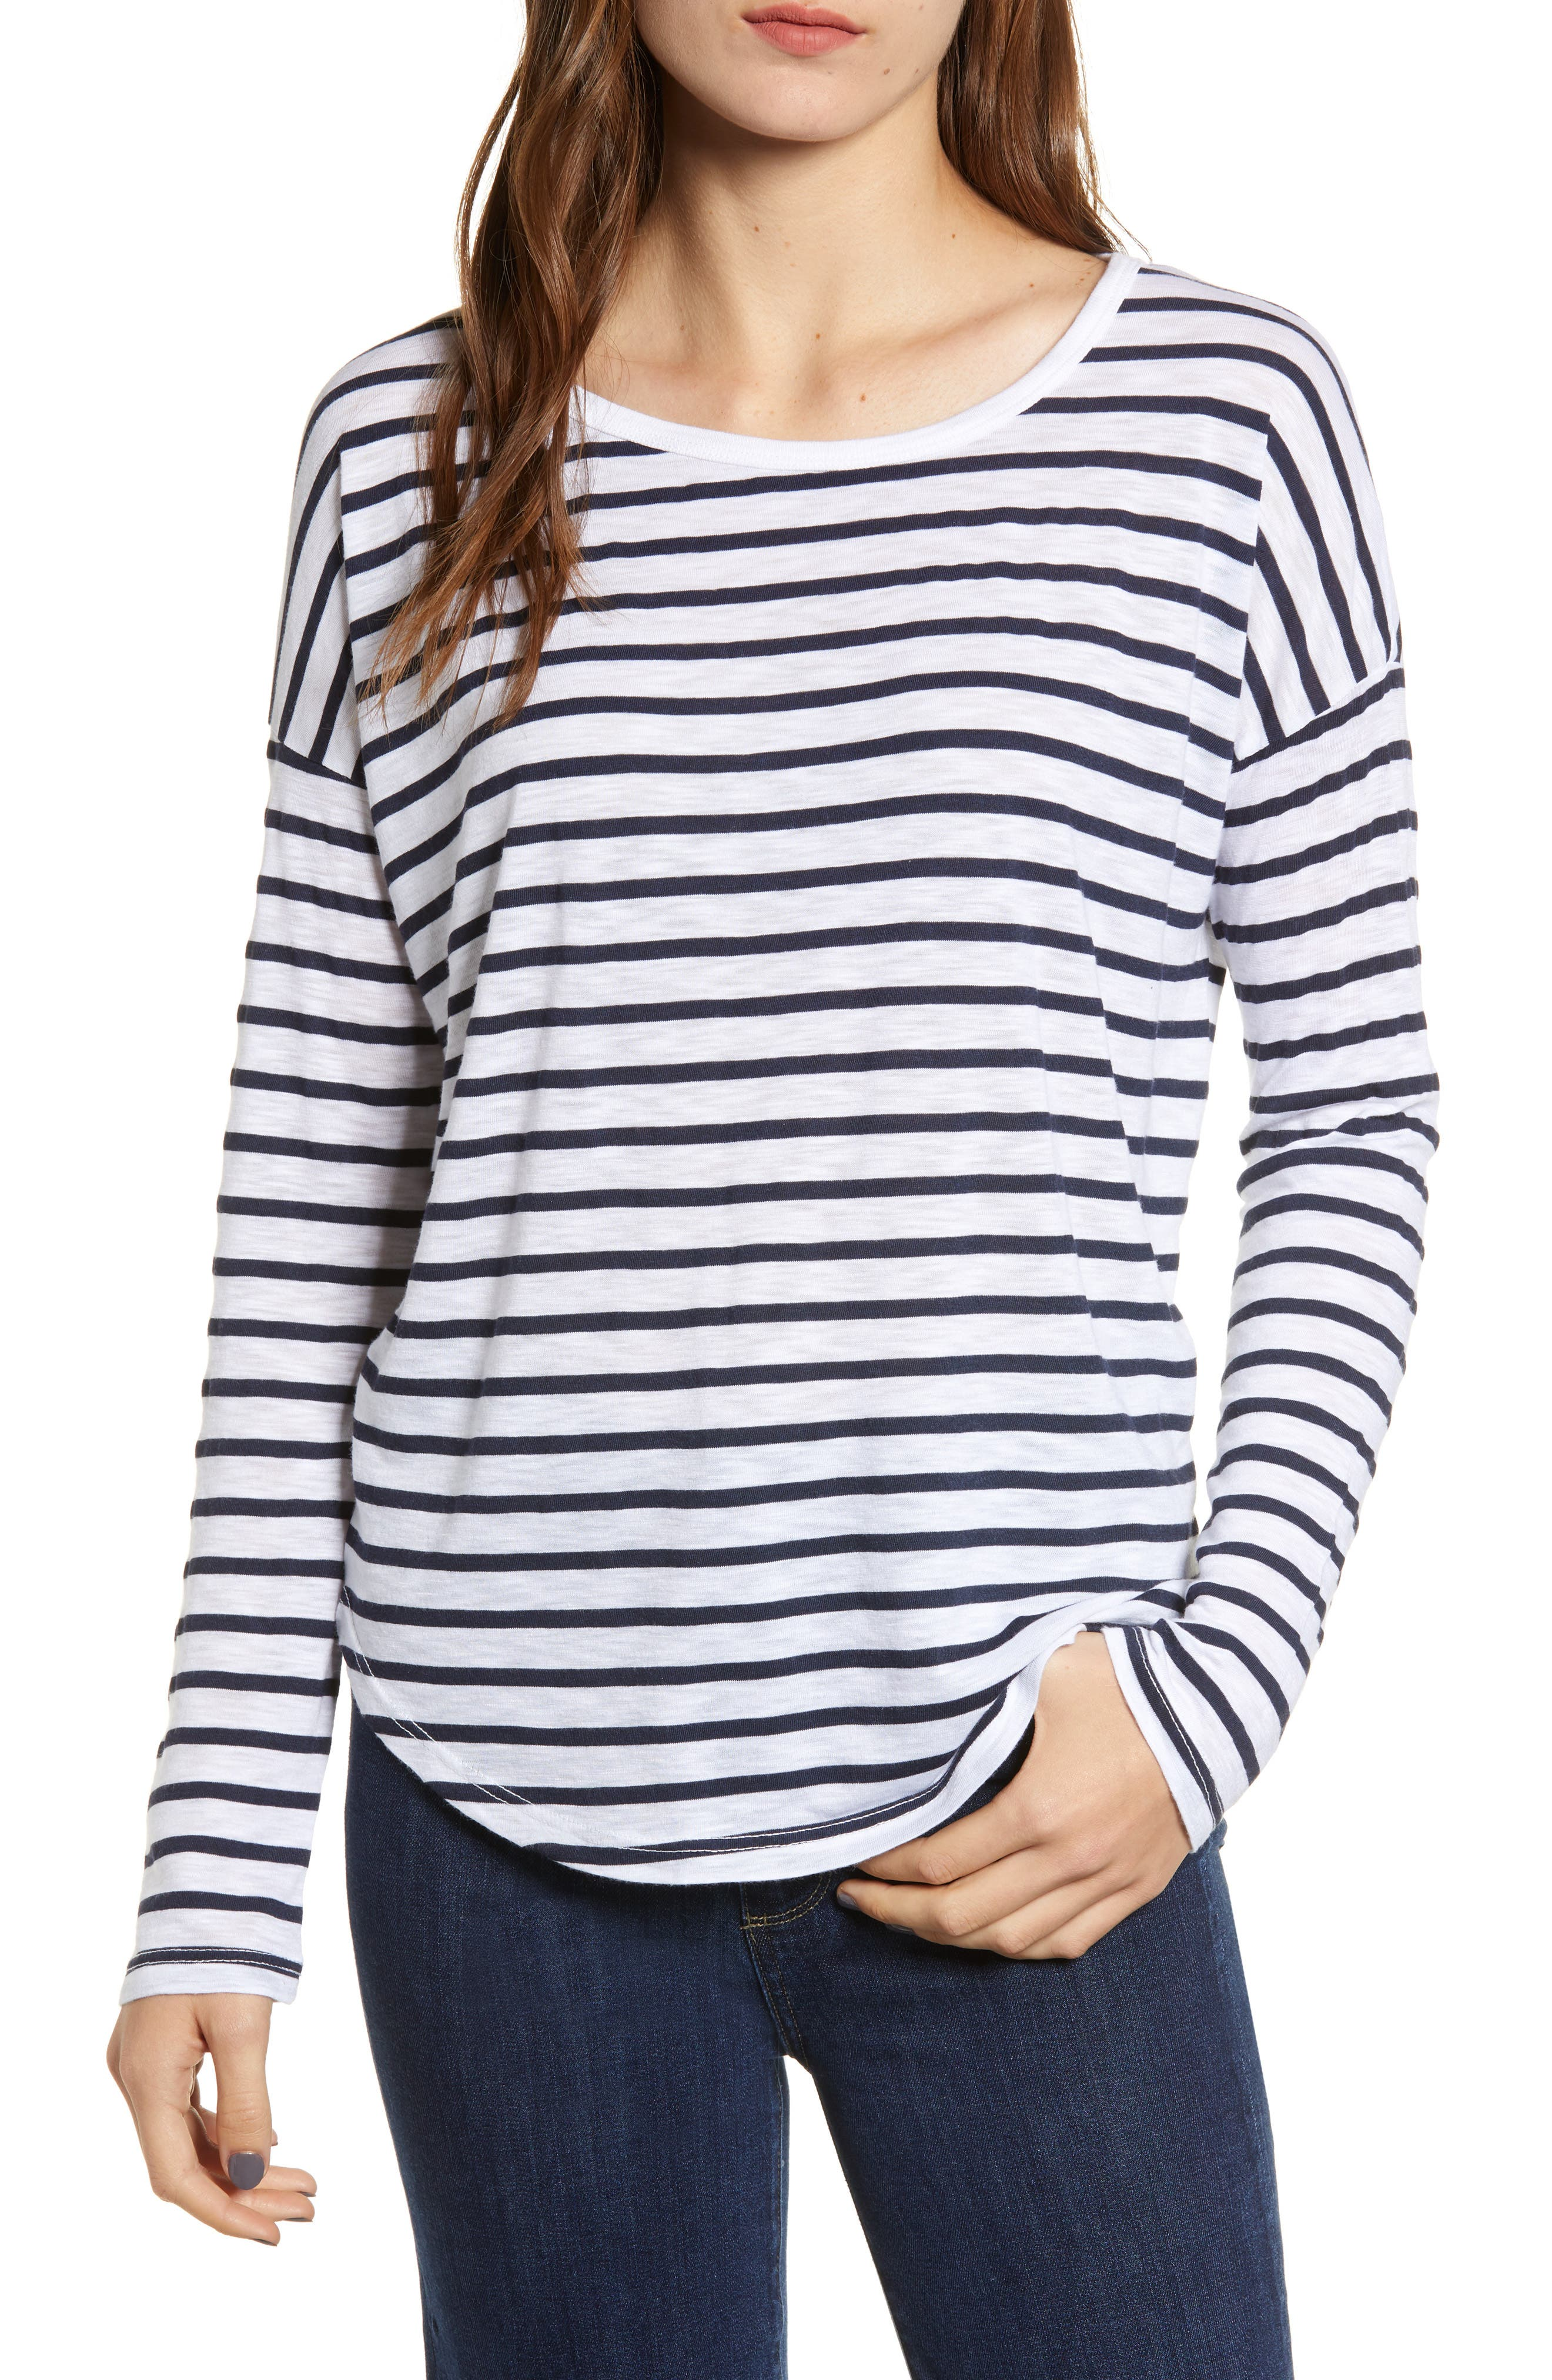 SPLENDID Striped Long-Sleeve Crewneck Slub Tee in Navy/ Off White